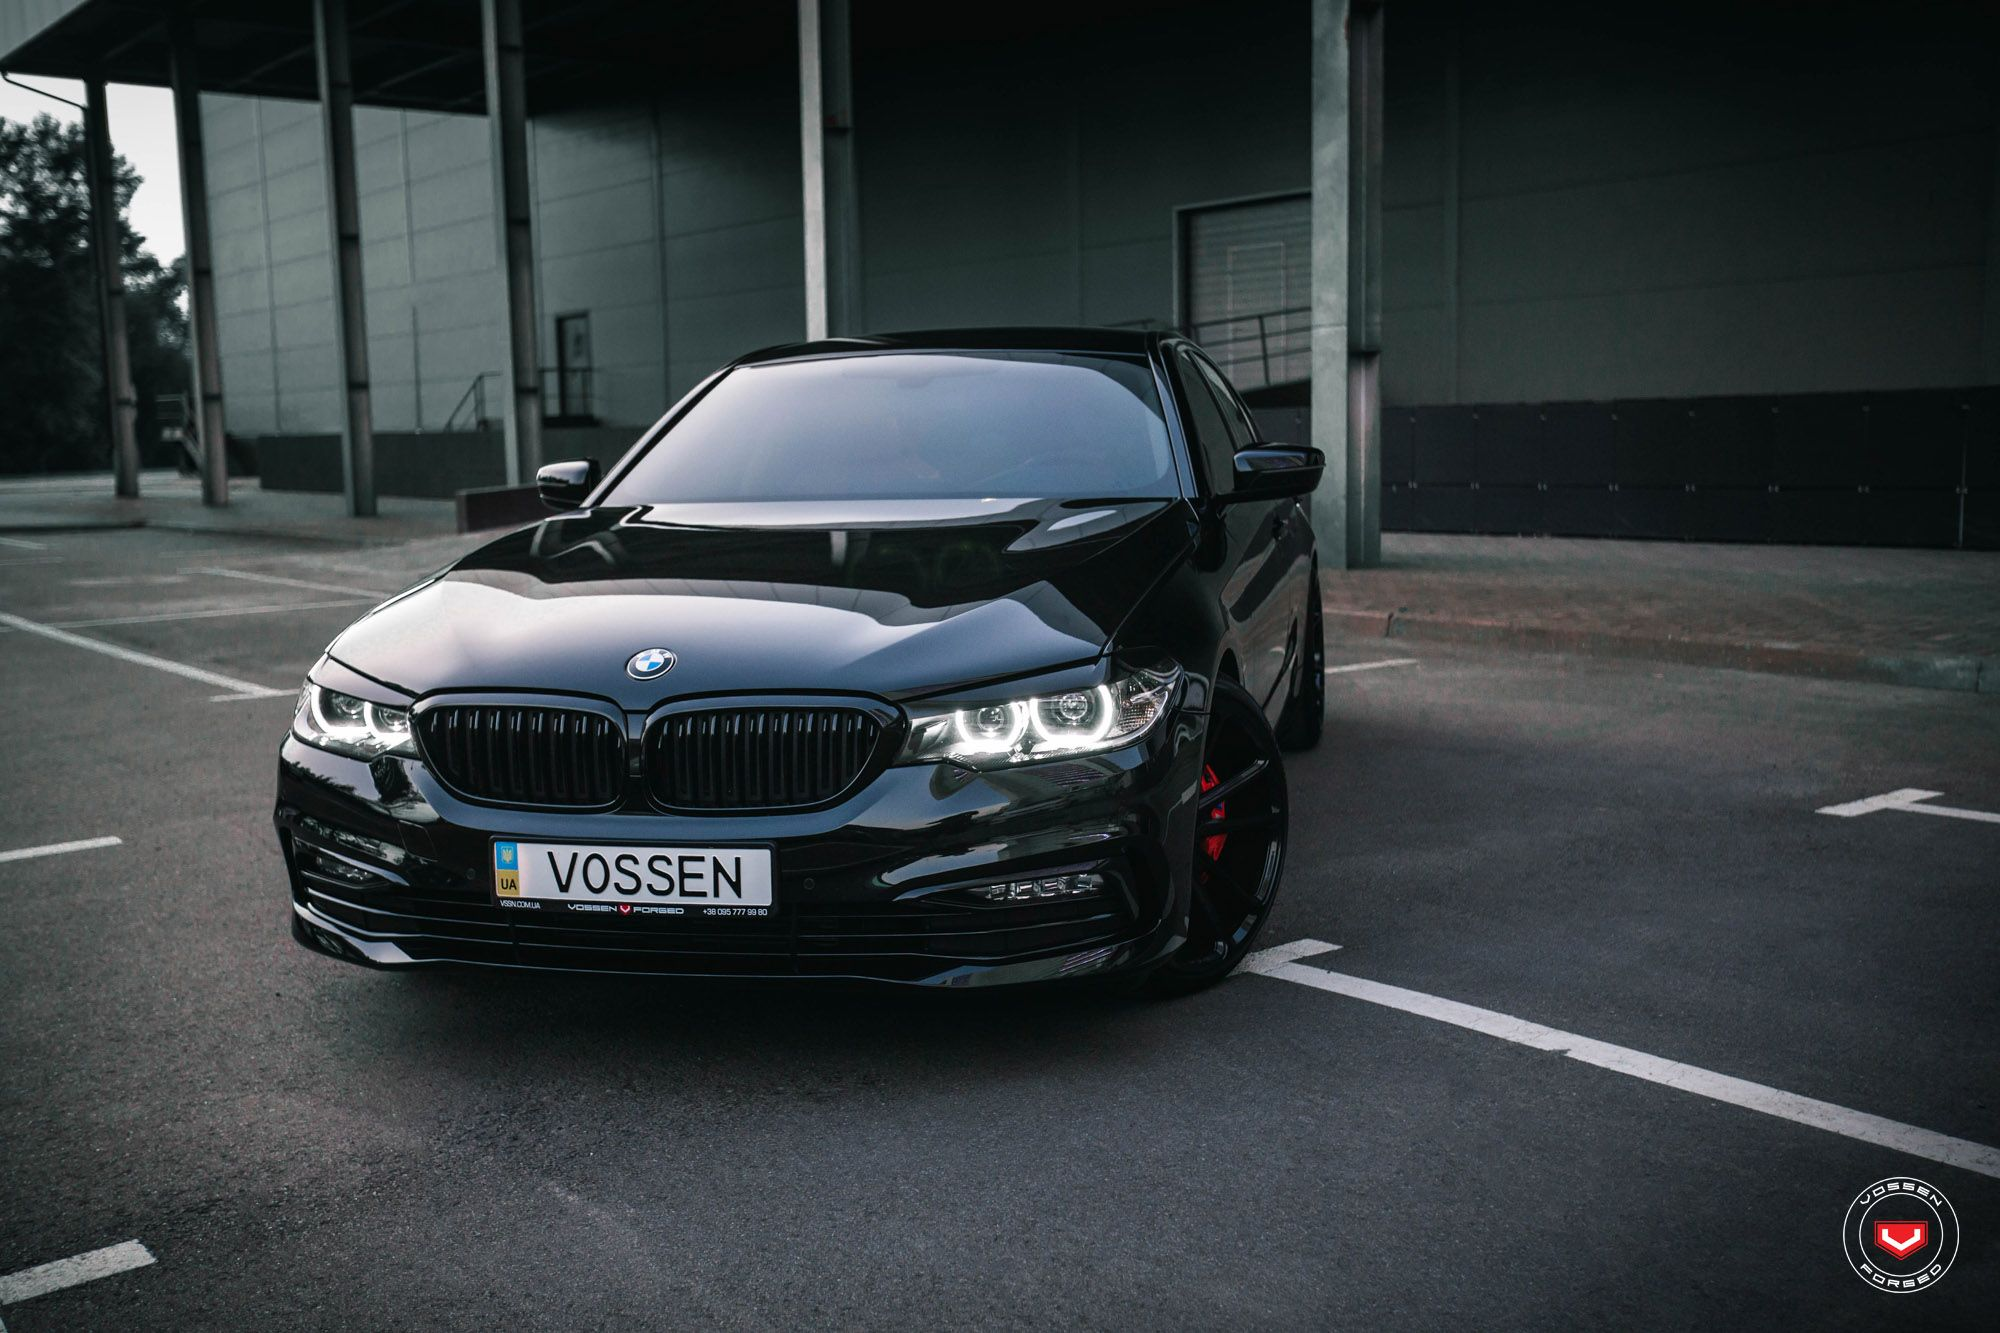 This 2018 Bmw 5 Series Gets A Blacked Out Look Mașini